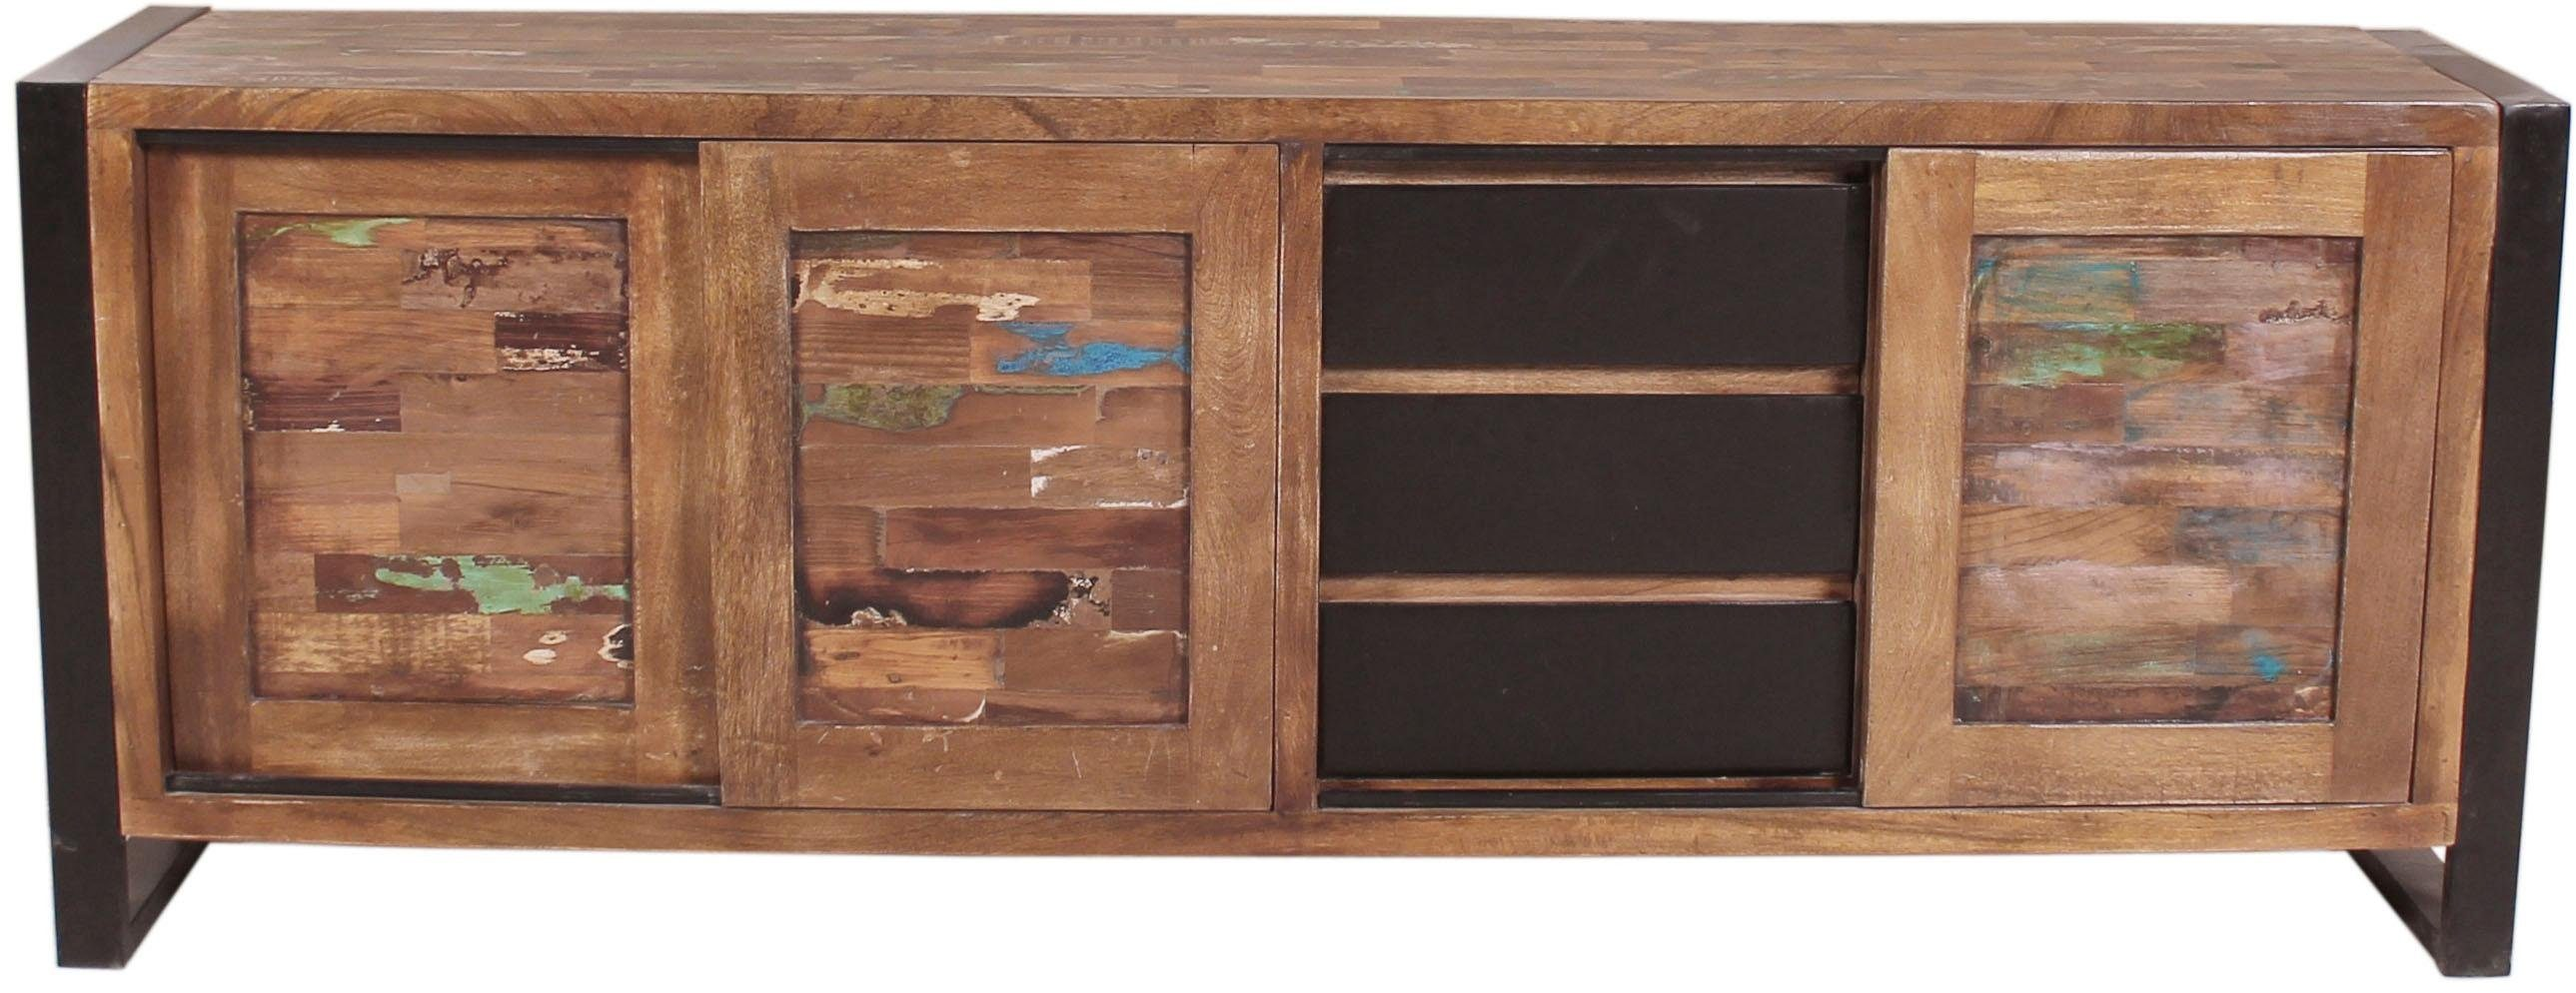 SIT Sideboard »Mox« M, farbiges Recyclingholz mit Eisen